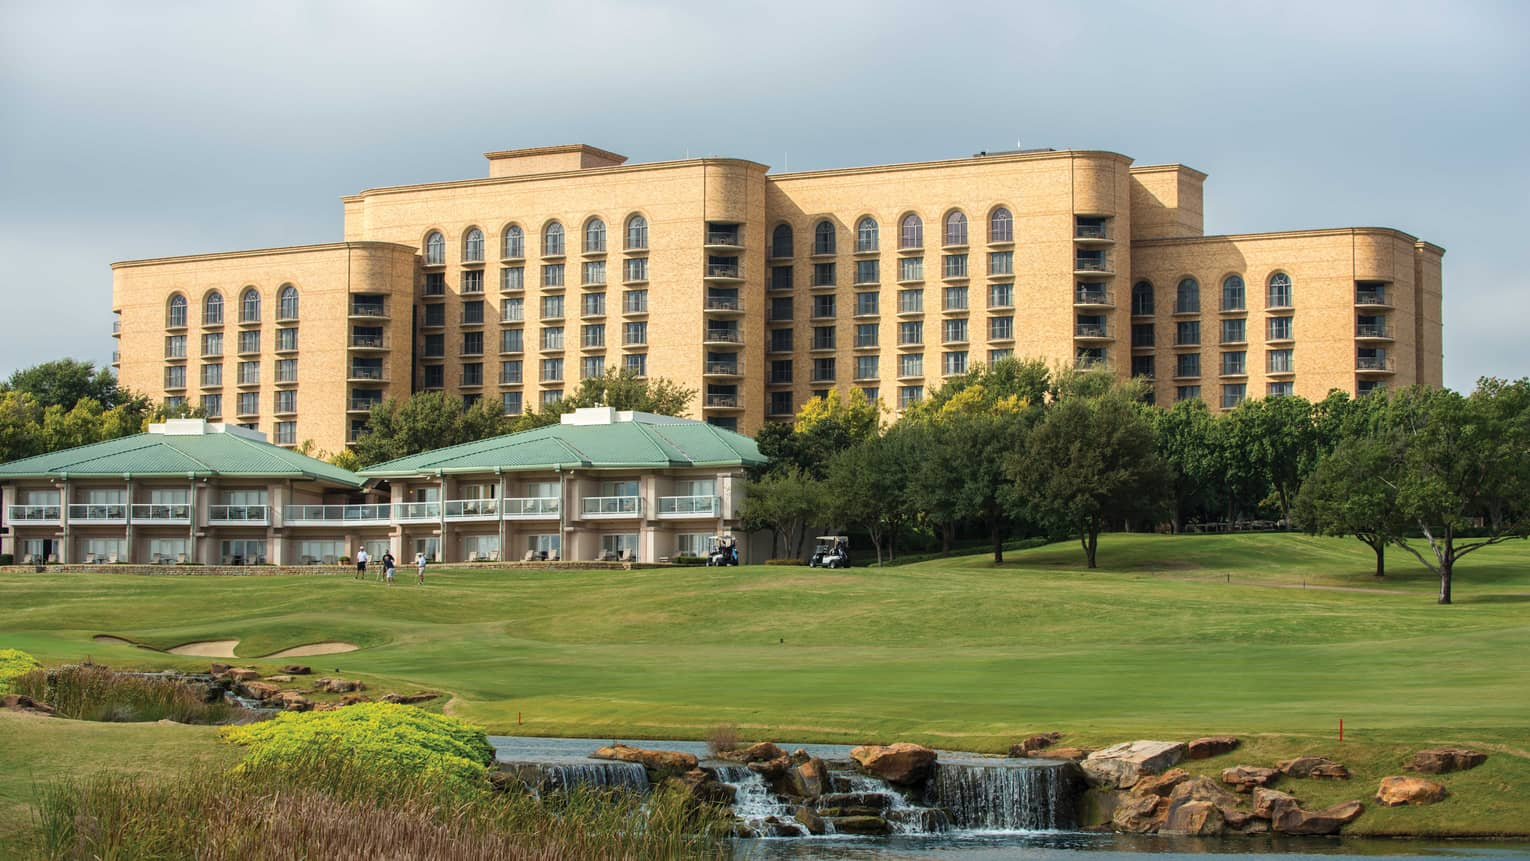 Exterior view of Four Seasons Hotel Dallas golf resort buildings at top of greens